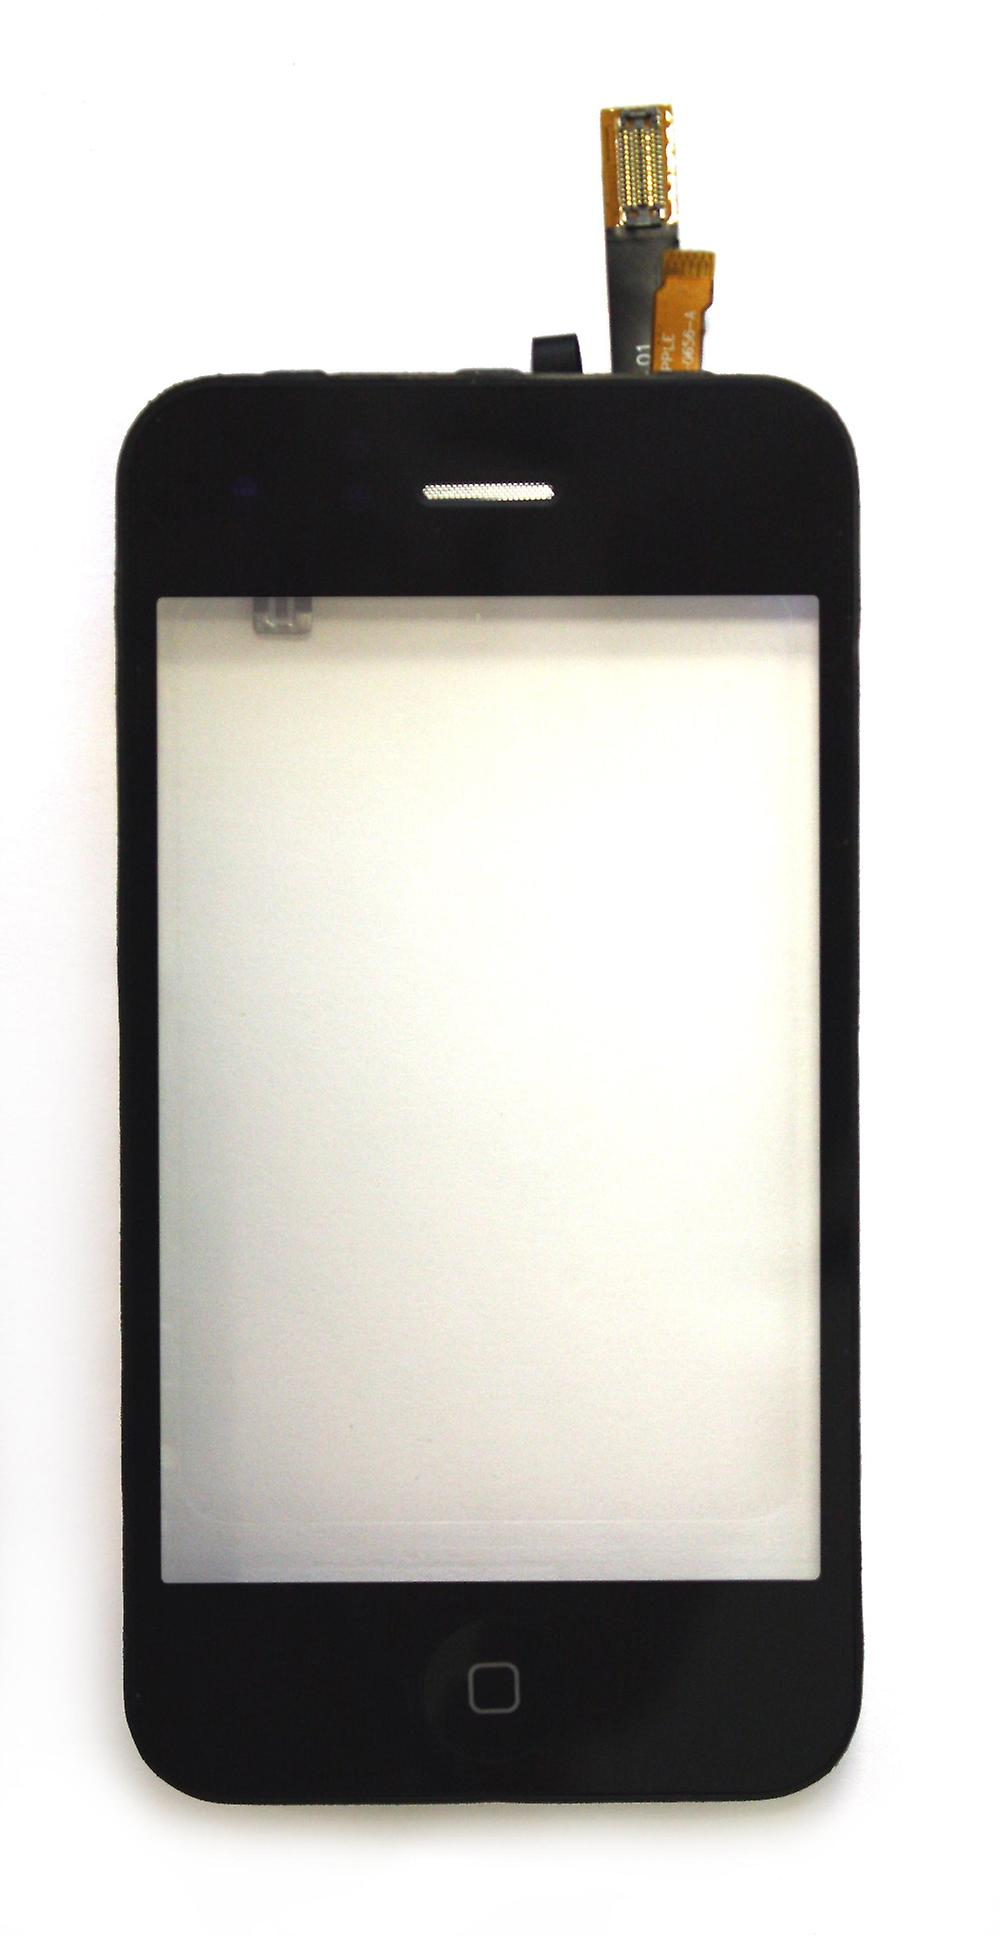 Apple iPhone 3G noir Compatible Digitizer Touch Screen